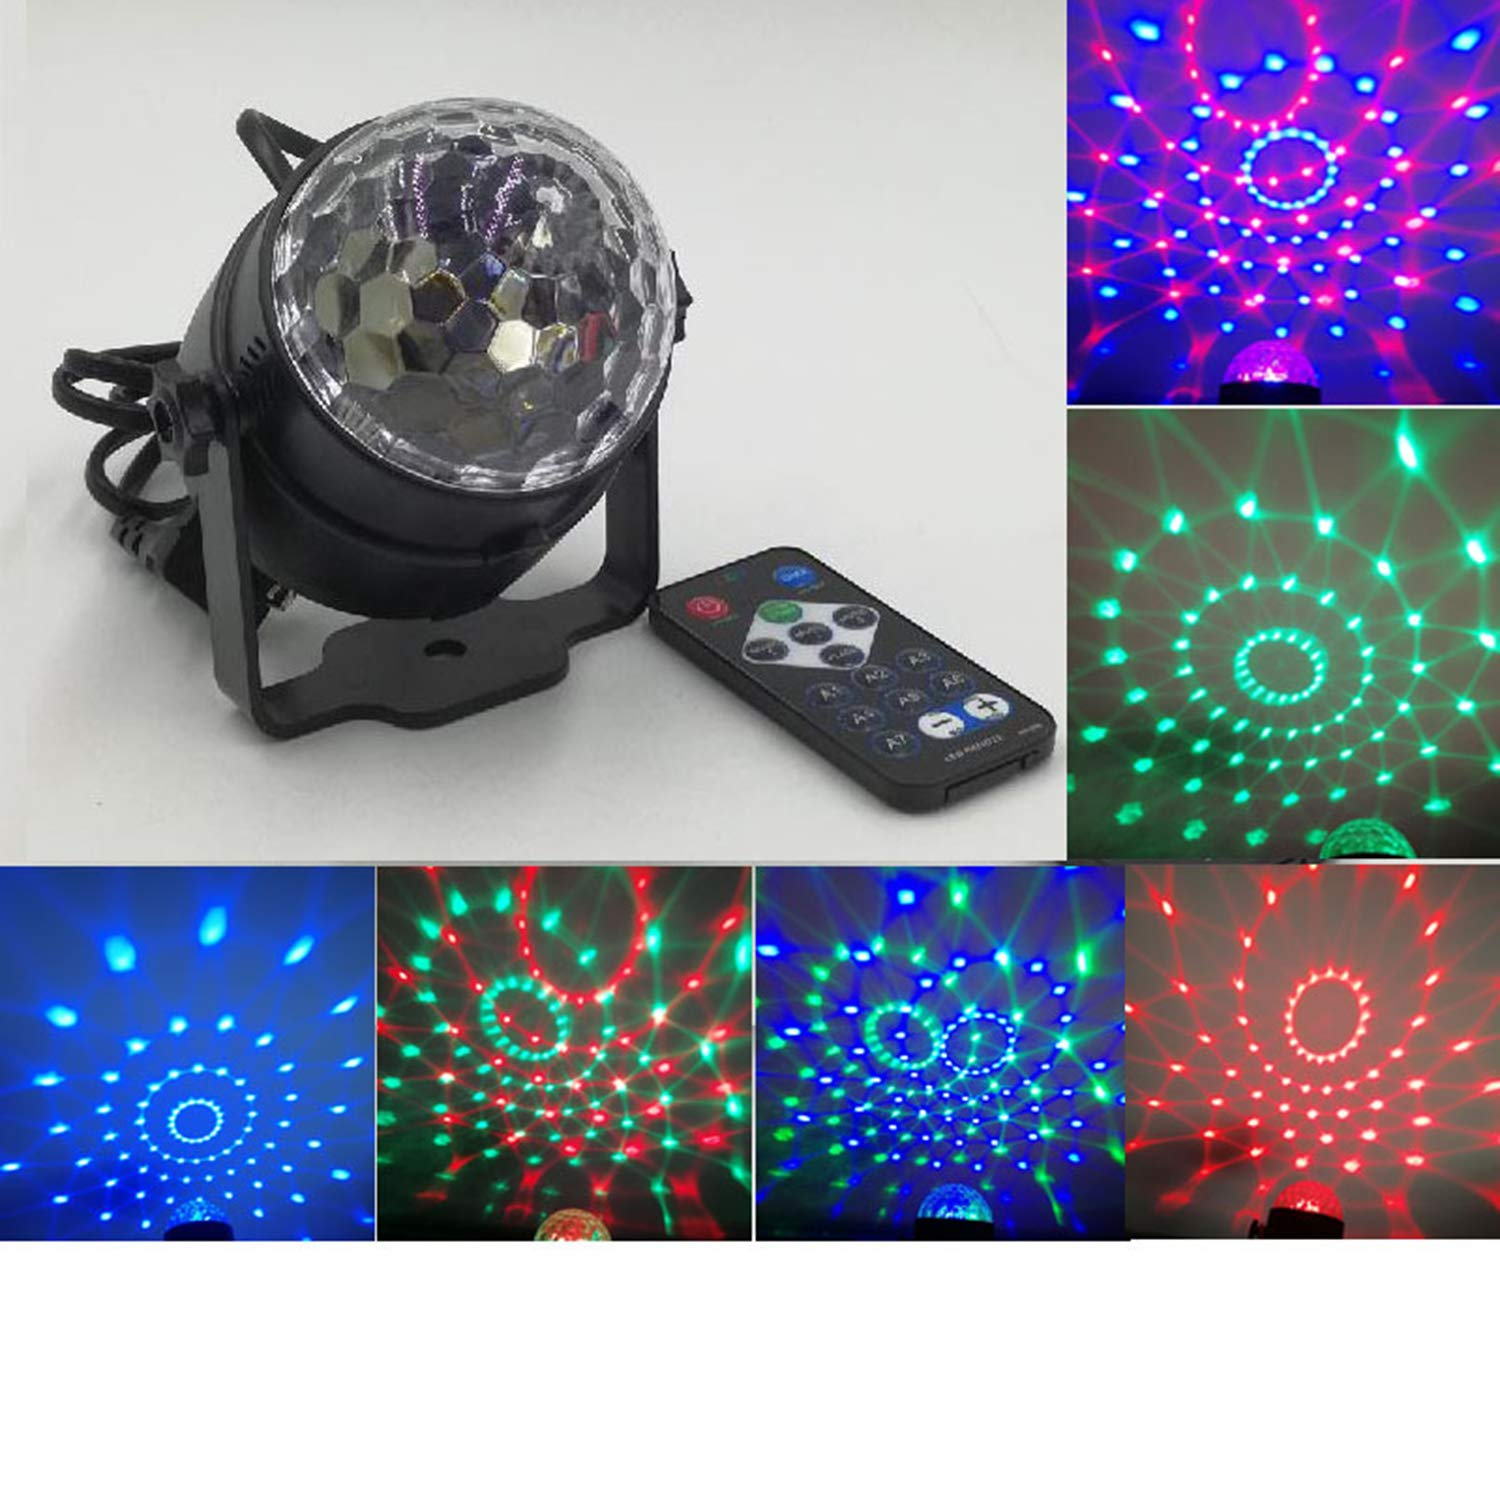 colorful Led Projection Lamp, Outdoor Crystal Decorative Stage Light, Led Voice Control redating with Remote Control Christmas Flash